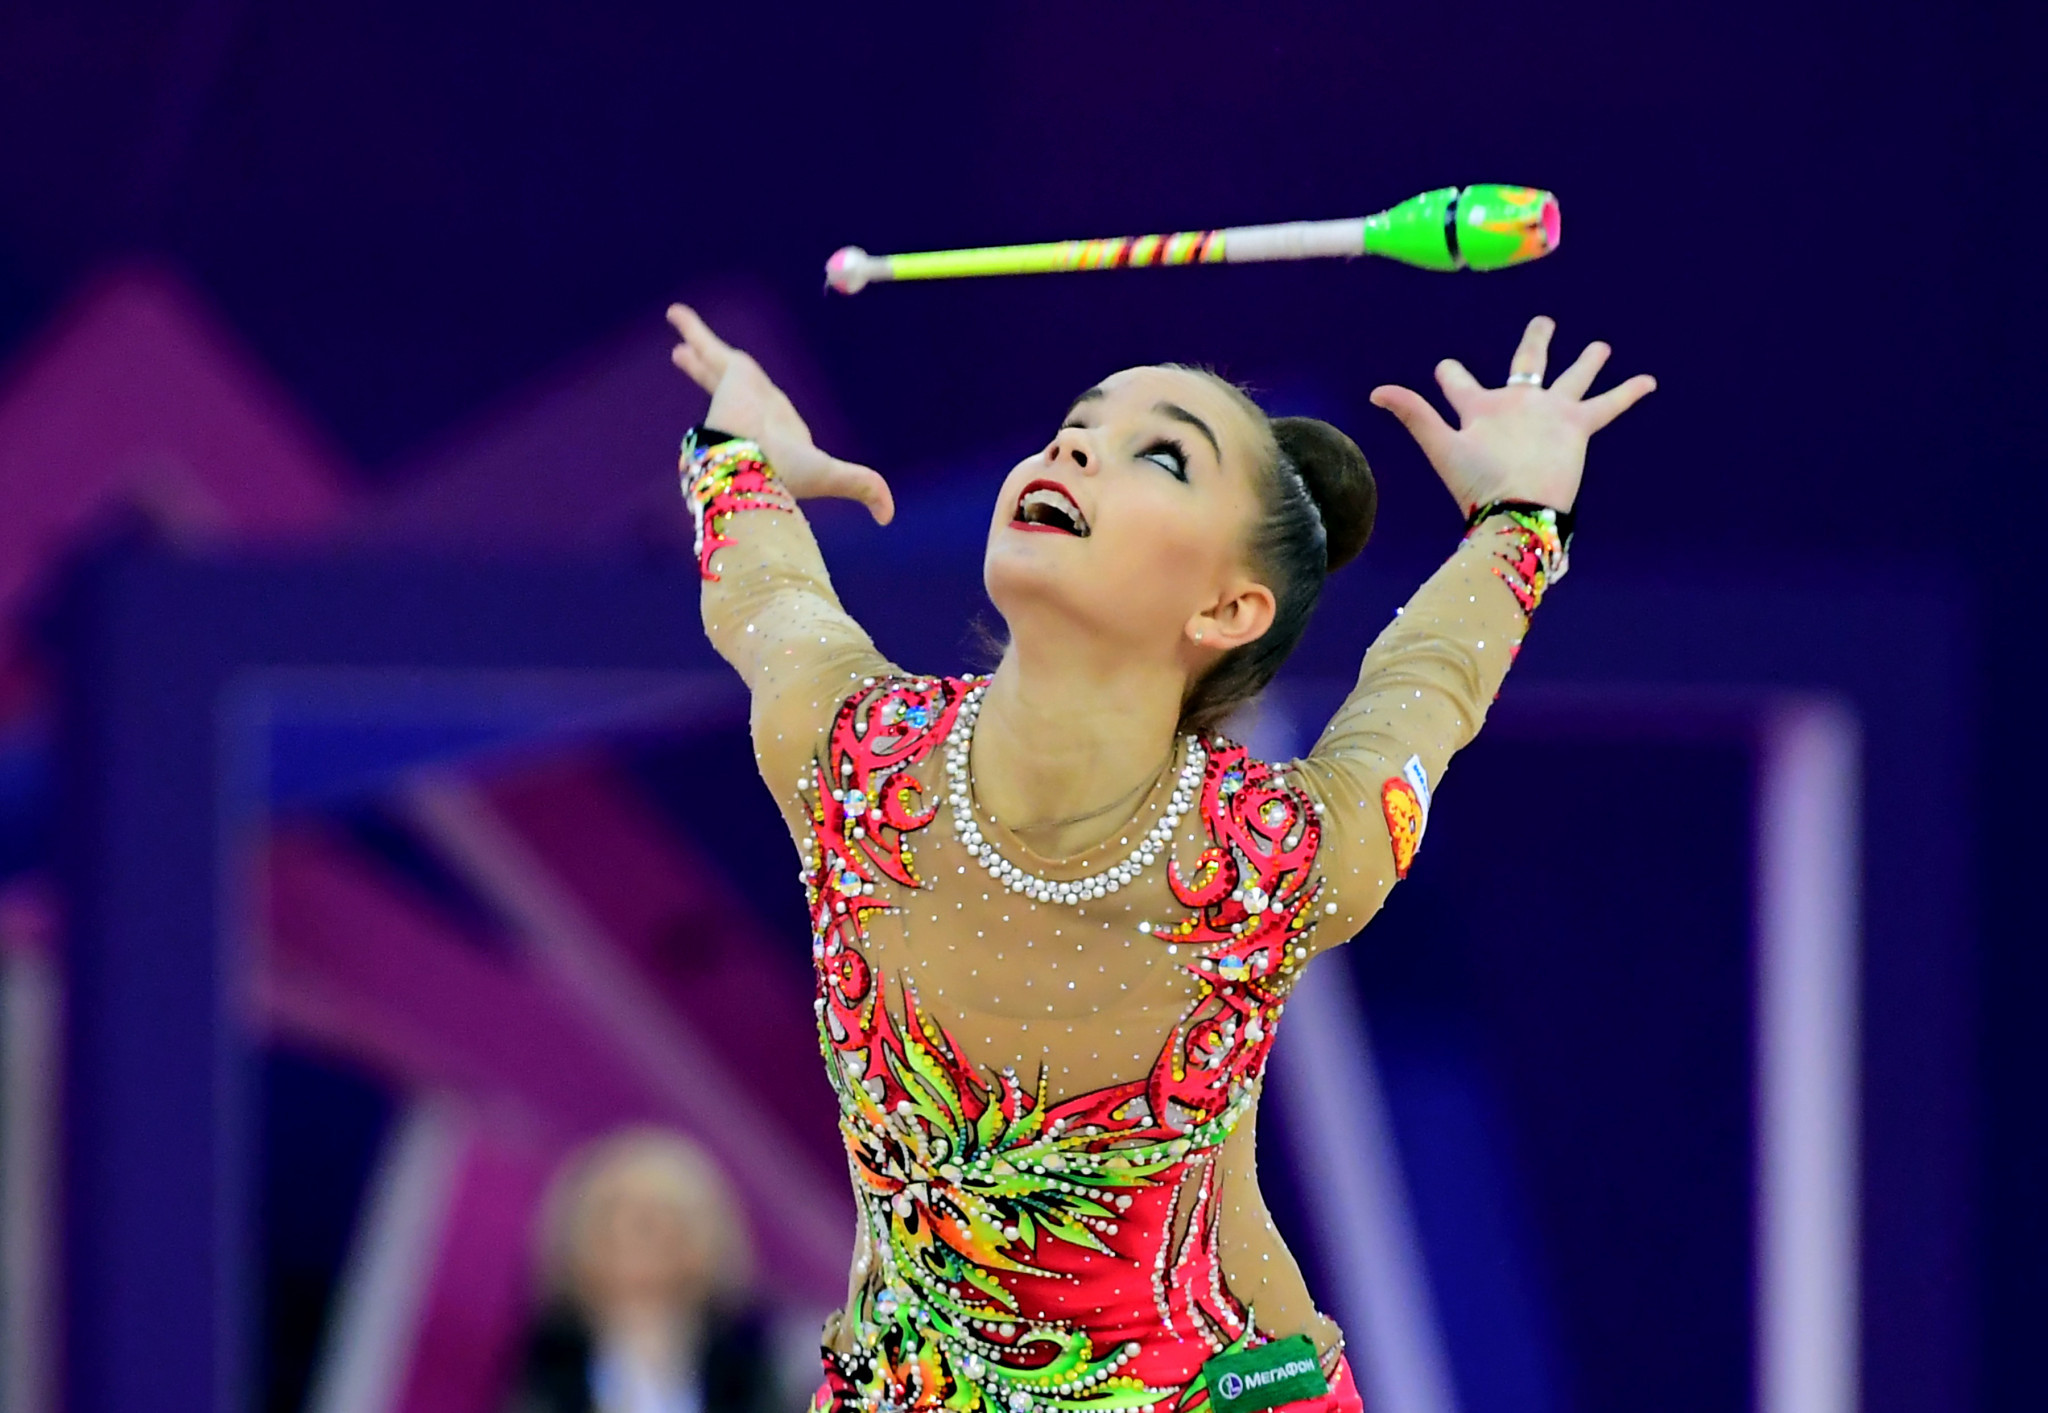 Russian sensation Dina Averina secured her fourth gold medal at the Rhythmic Gymnastics World Championships